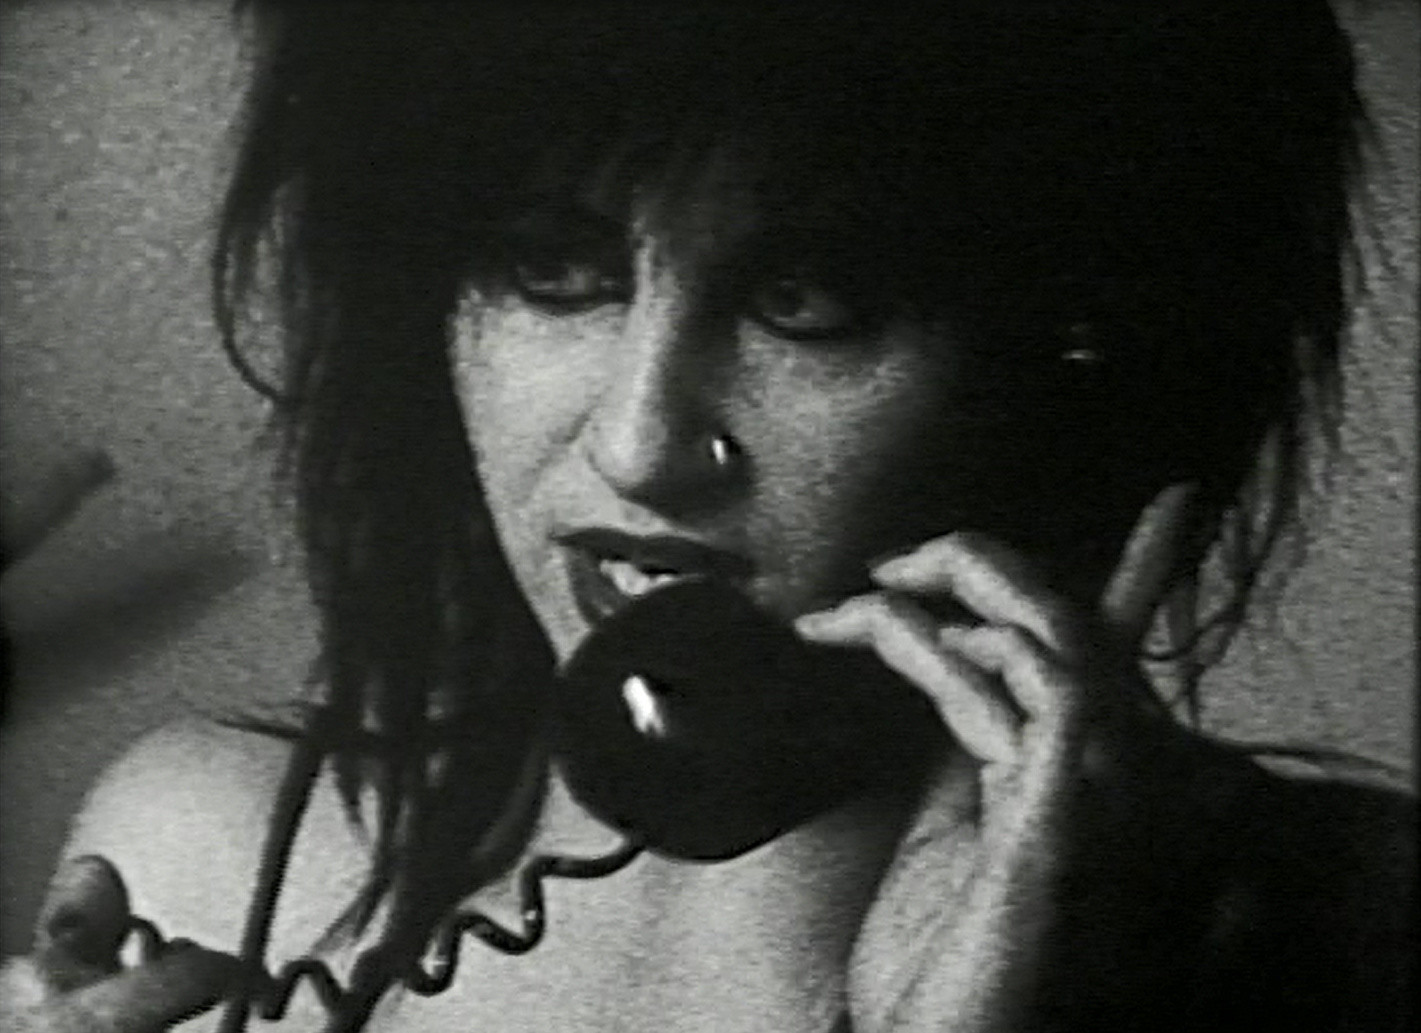 Fingered. 1986. USA. Directed by Richard Kern